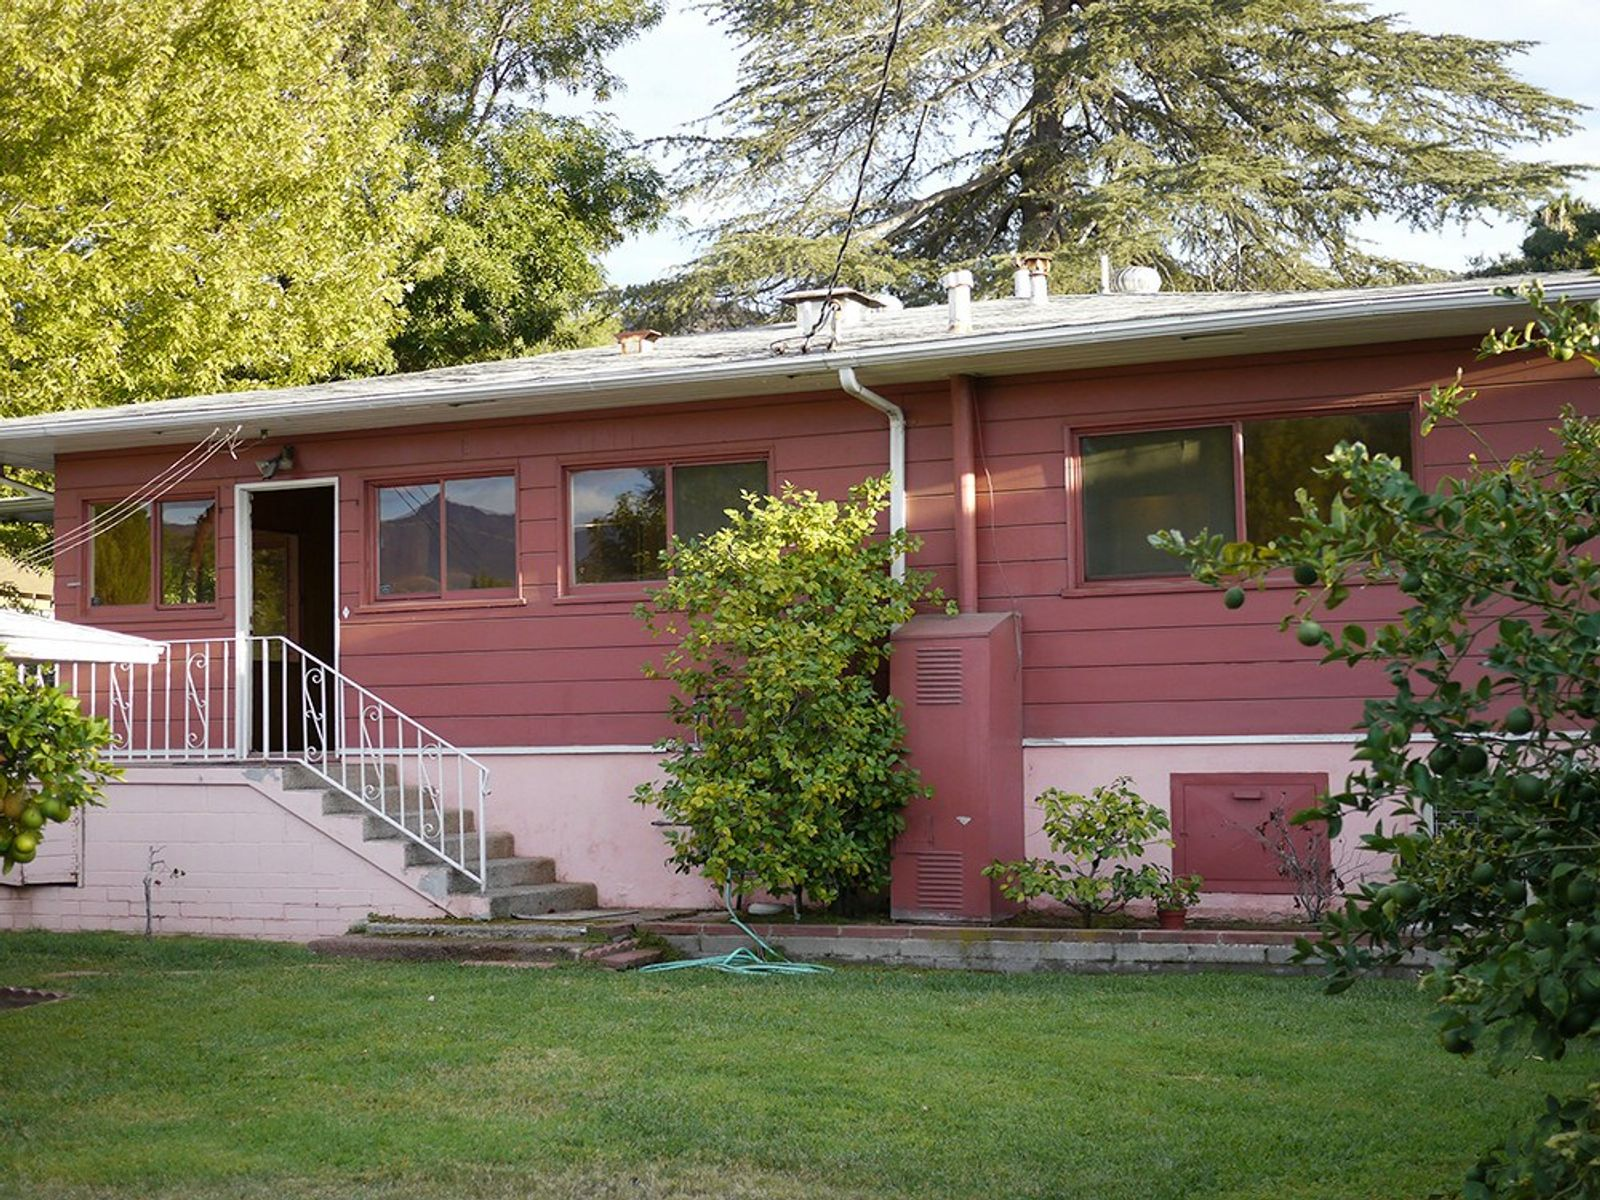 Mid-Century Ranch Fixer with Views, Sunland CA Single Family Home - Los Angeles Real Estate